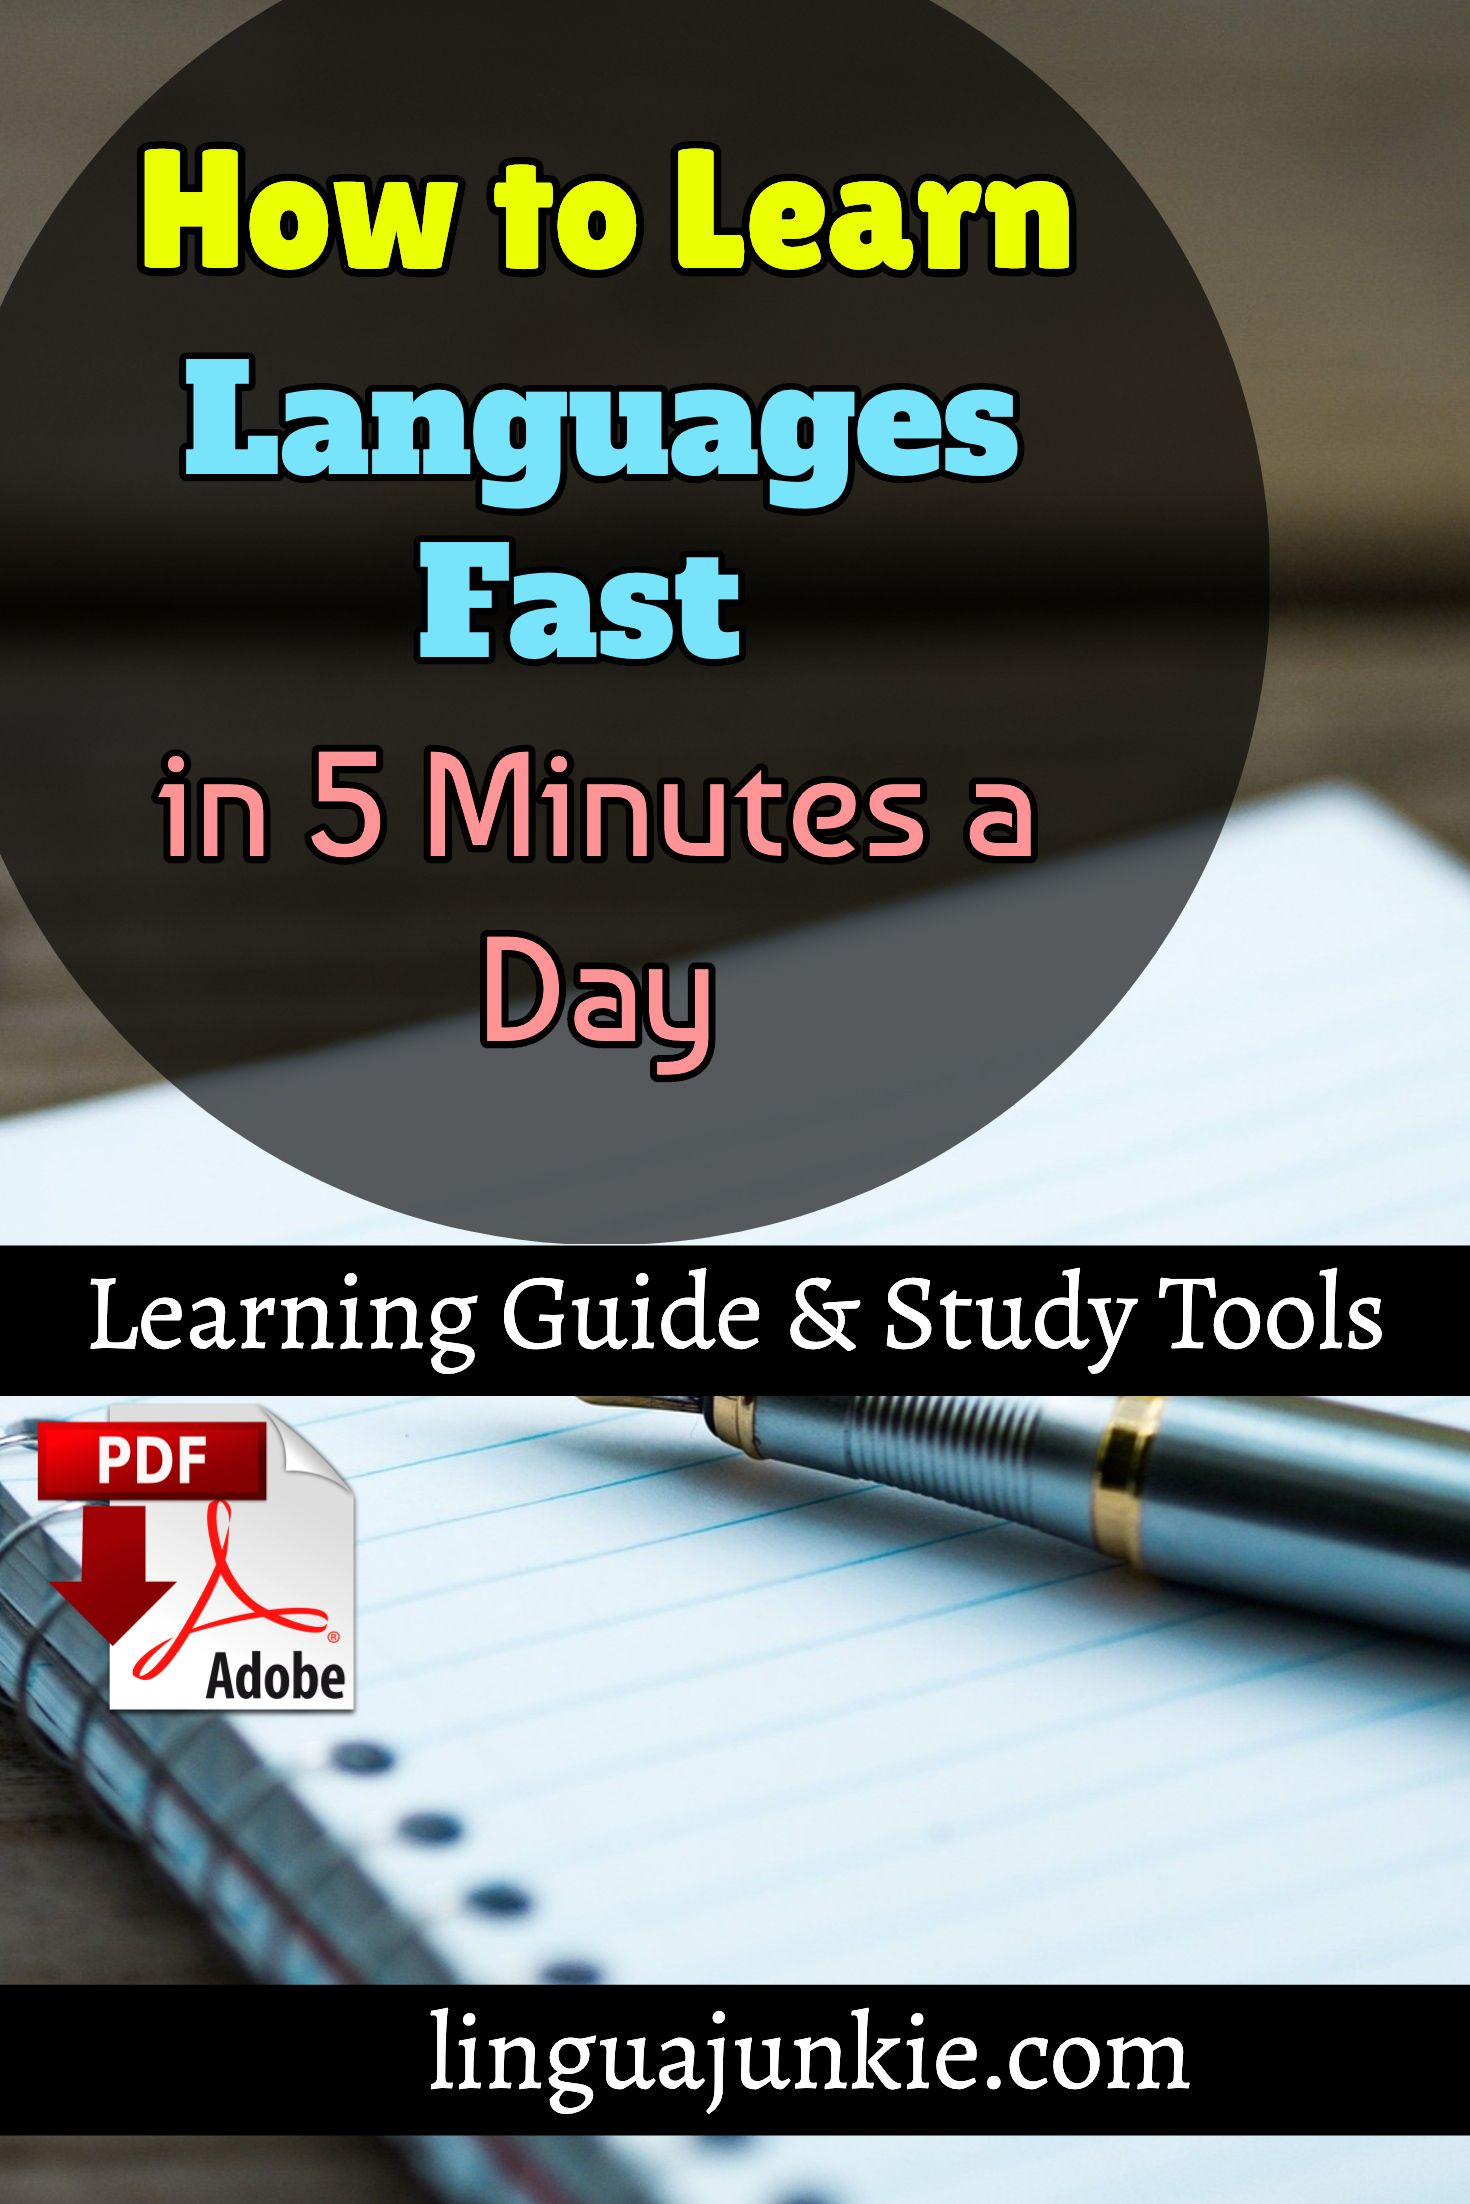 How to learn language fast 5 minute a day lessons2020